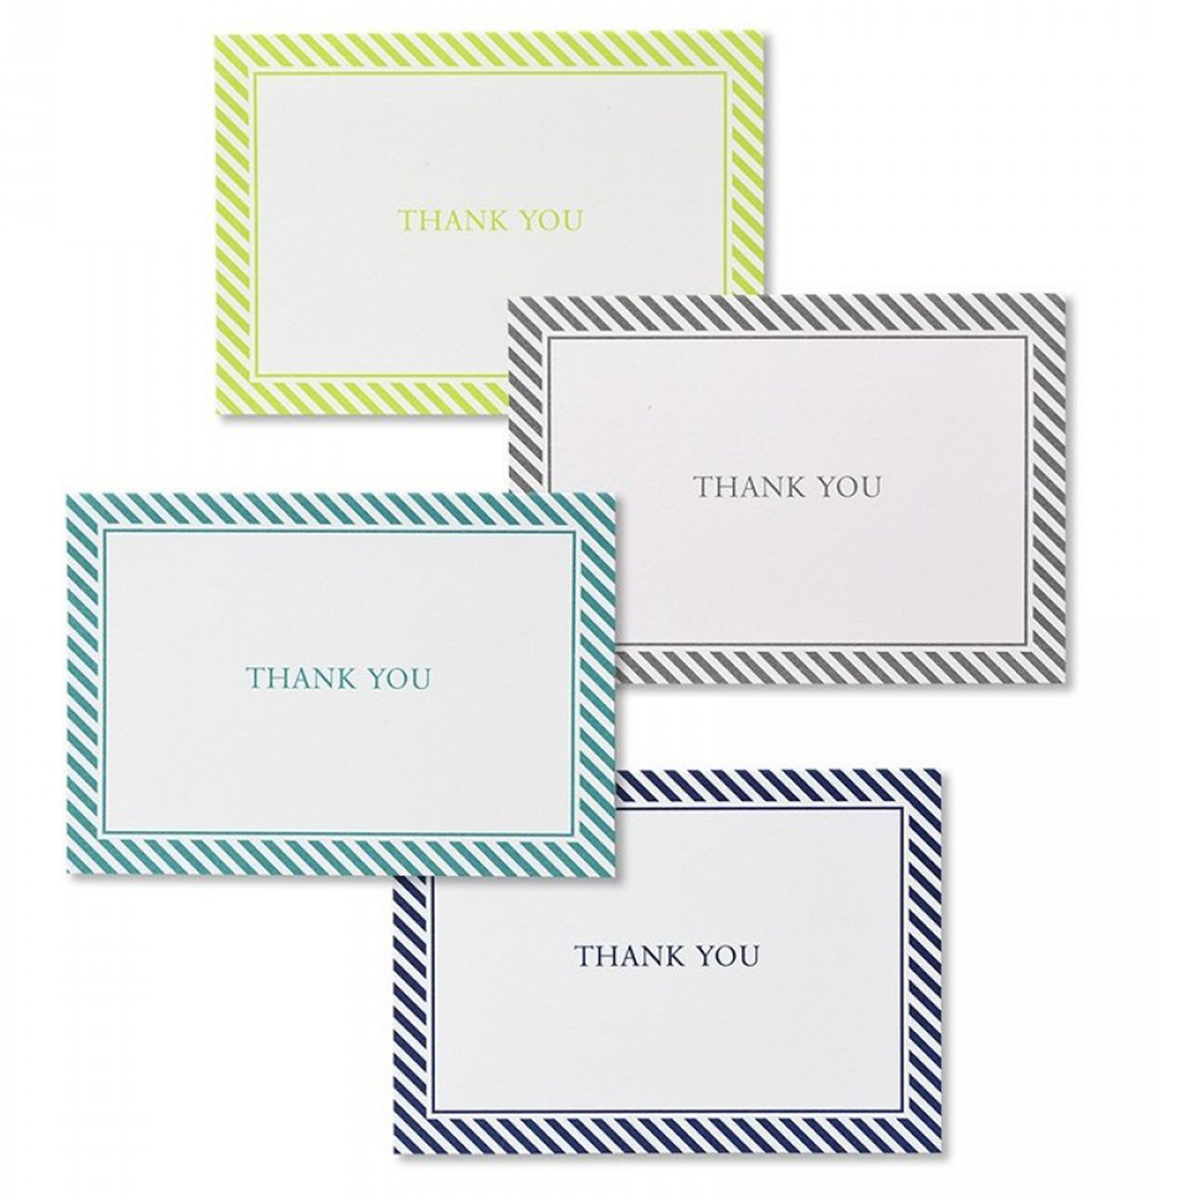 Cool Tone Stripes Thank You Card Assortment - 24 Count